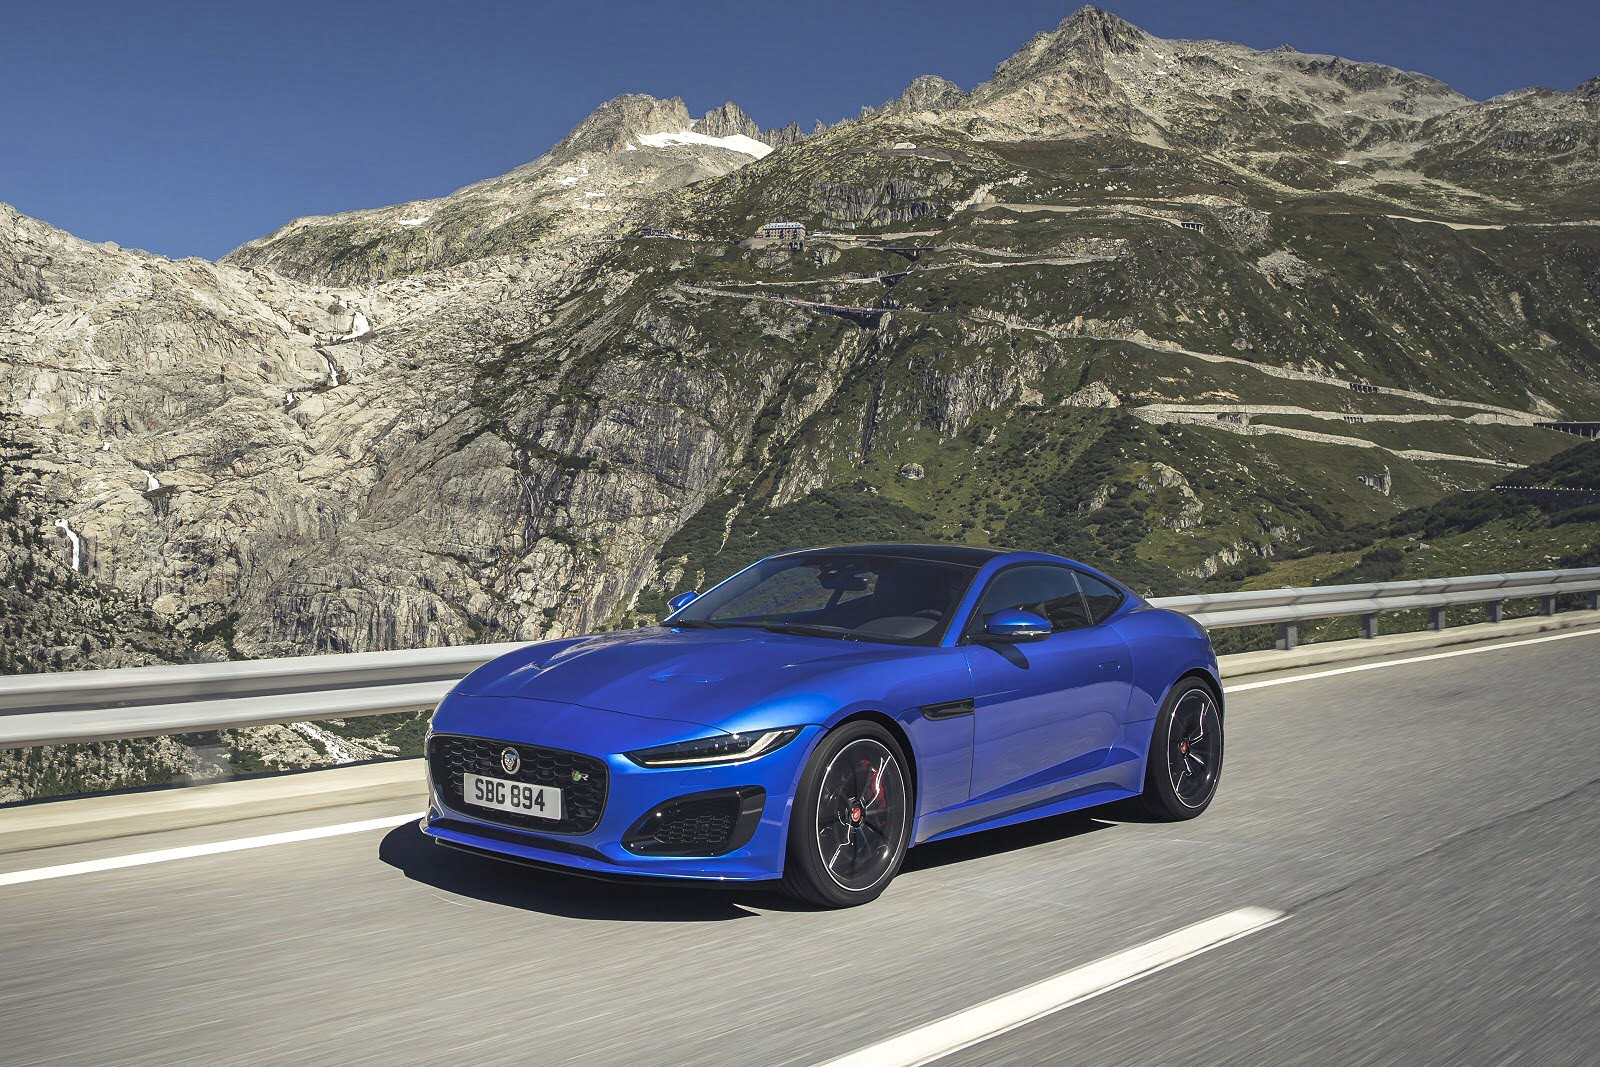 f_type_coupe_98188.jpg - 2.0 P300 R-Dynamic 2dr Auto